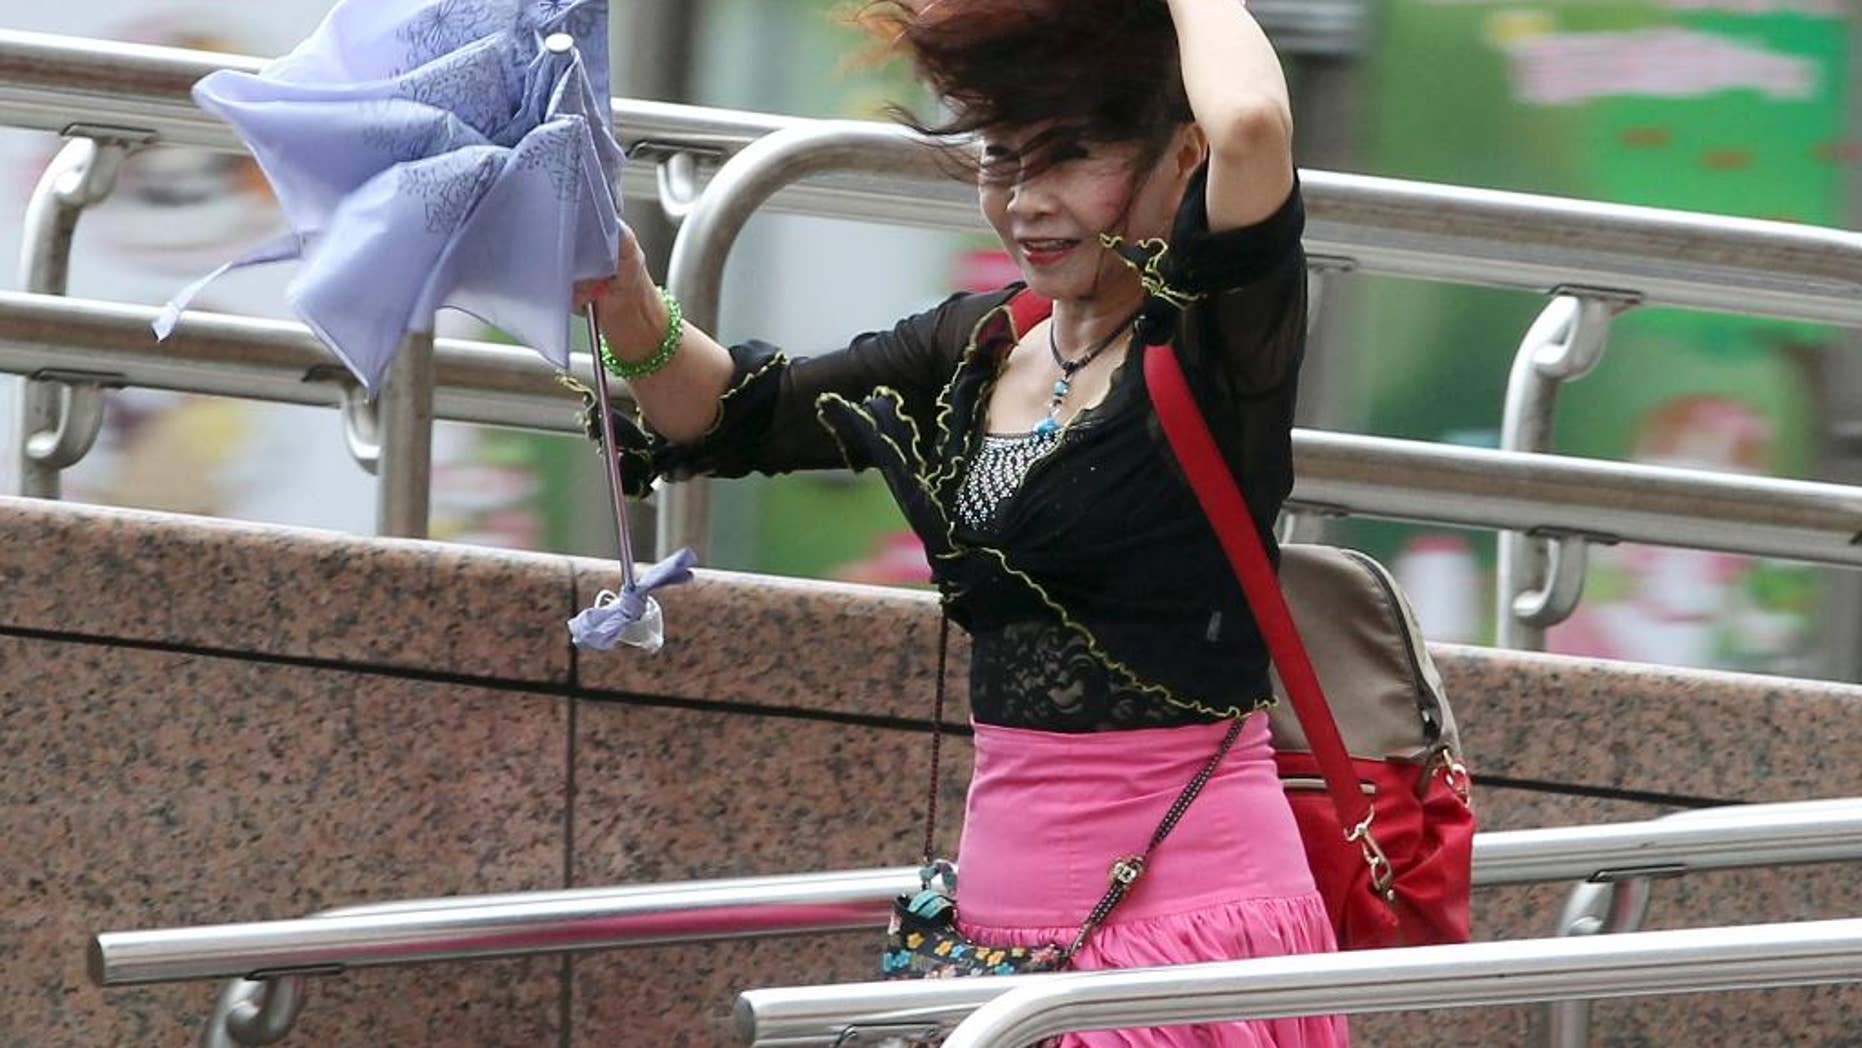 A woman struggles in the wind from Typhoon Nepartak in Taipei, Taiwan, Friday, July 8, 2016. Power was partially restored in Taiwan on Friday after Nepartak slammed into the island's eastern coast with ferocious winds and torrential rains. (Chang Hao-an/Central News Agency via AP)